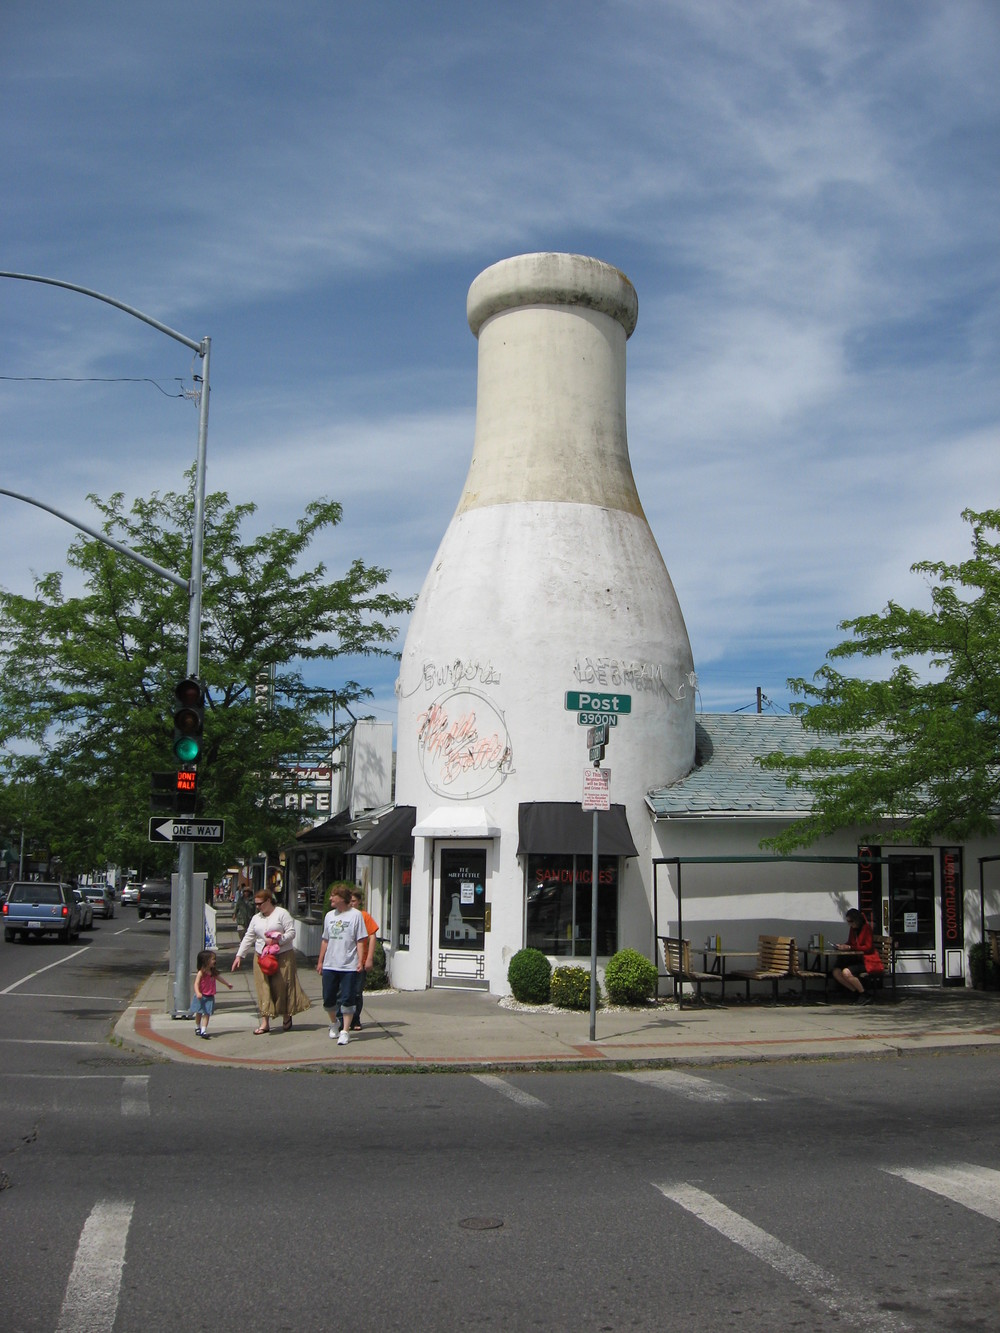 The  1935 Benewah Milk Bottle is the other iconic building in the Garland District.